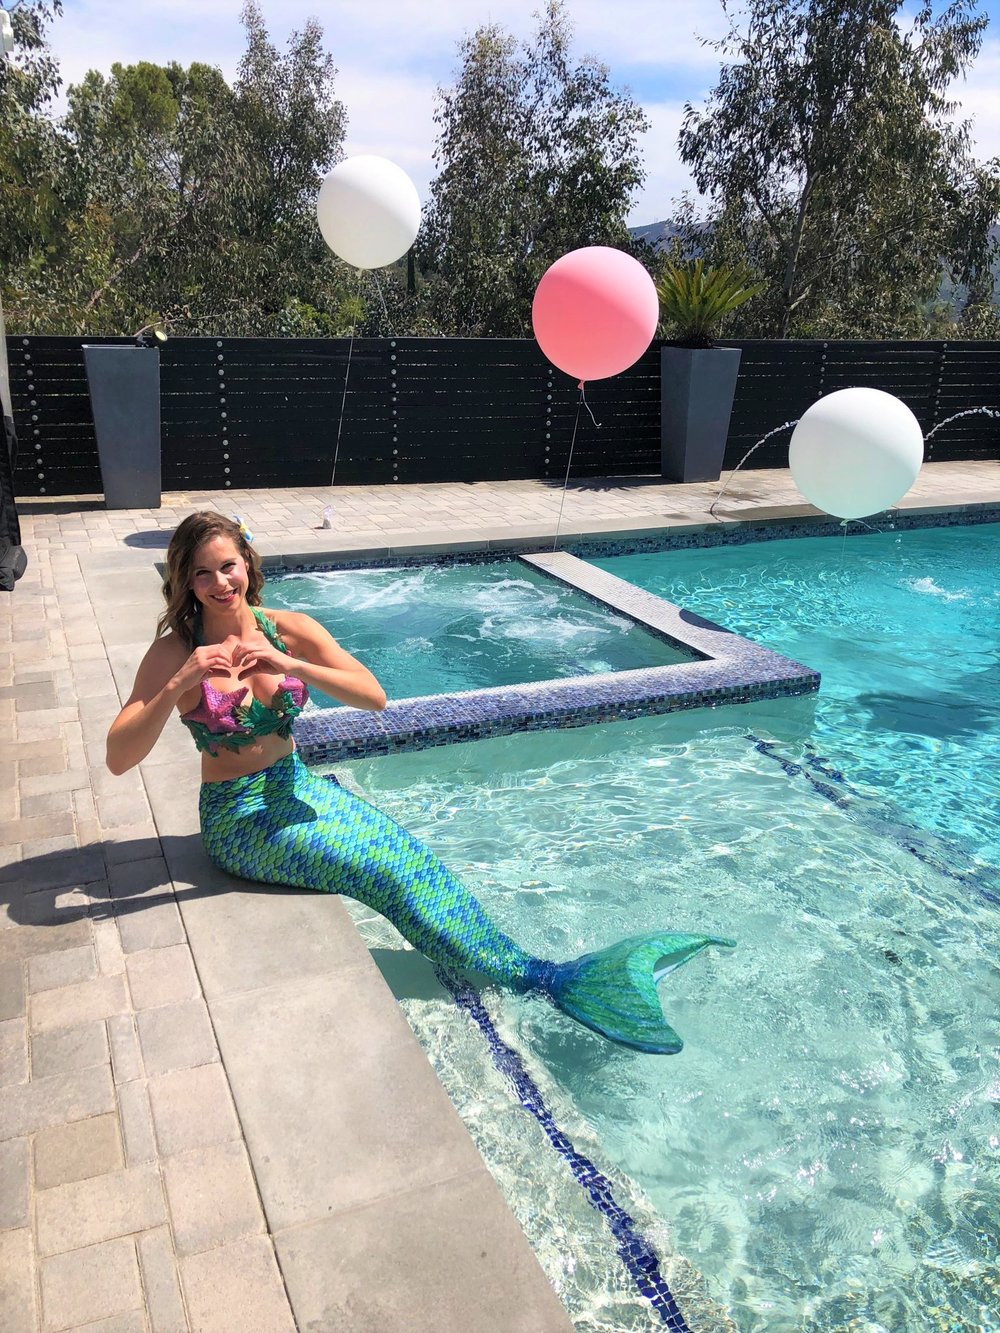 Mermaid Lona Fabric Tail 3 (2).jpg